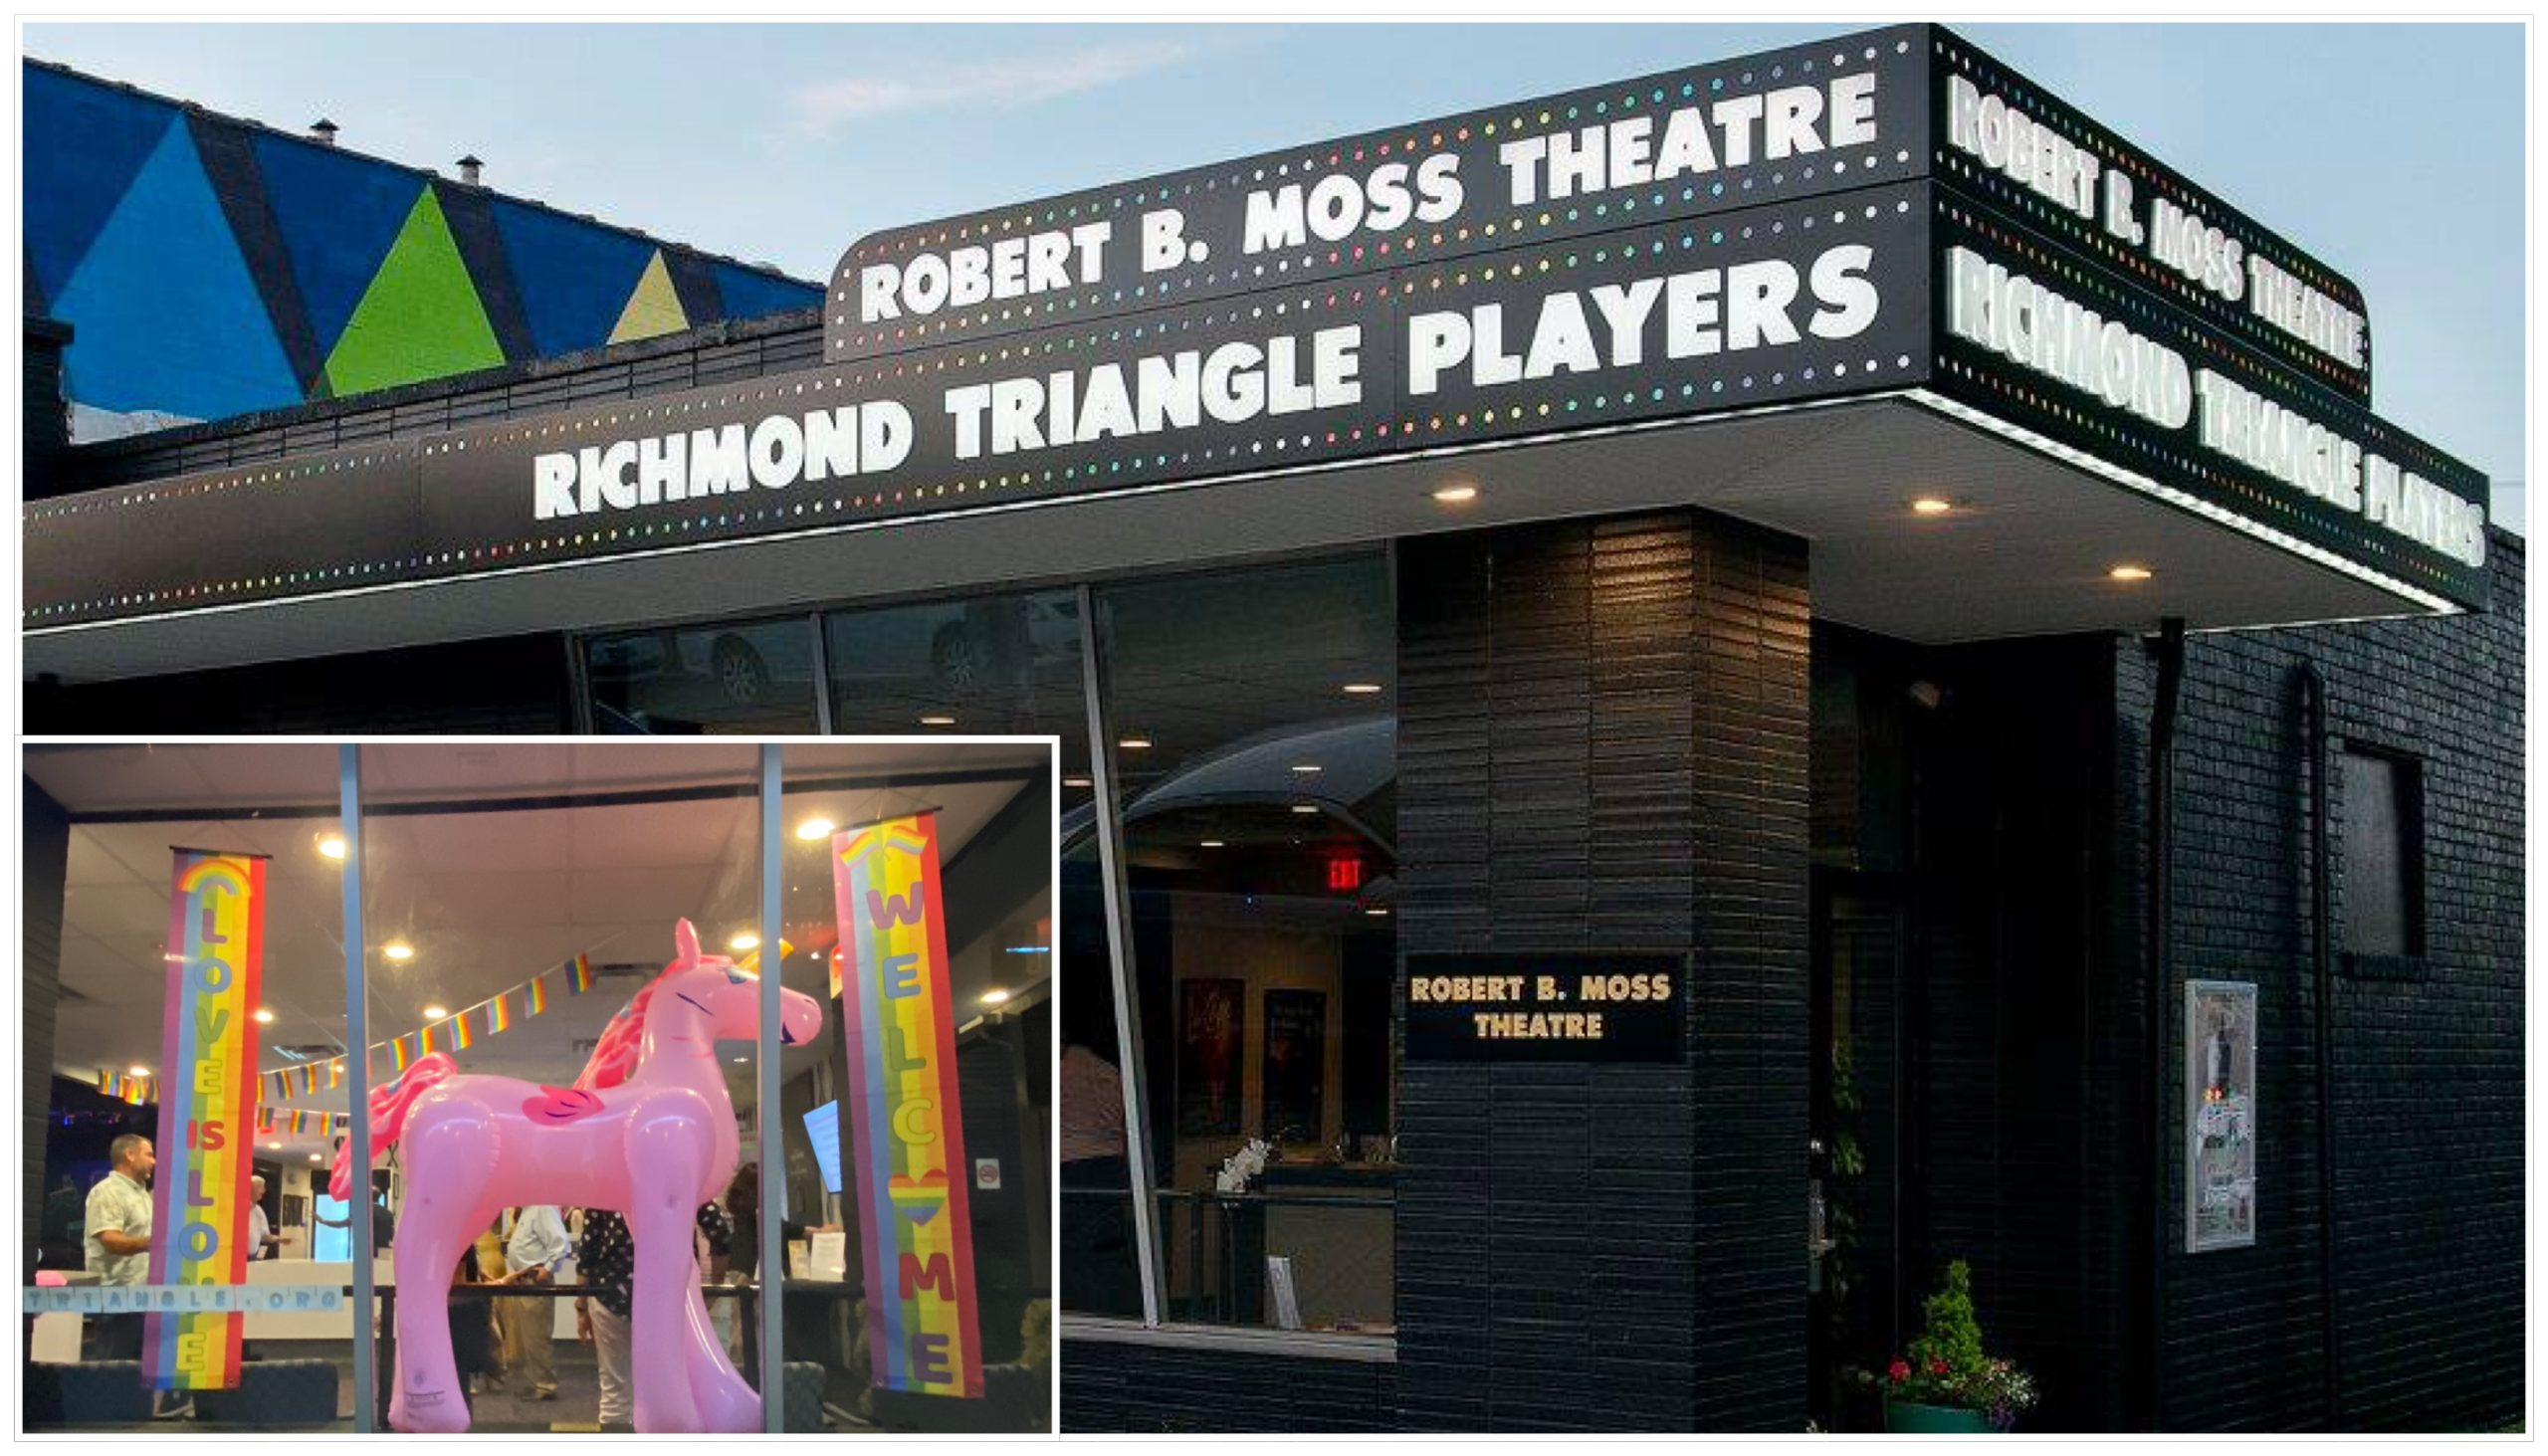 RTP Theater Front With Pink Unicorn In Window